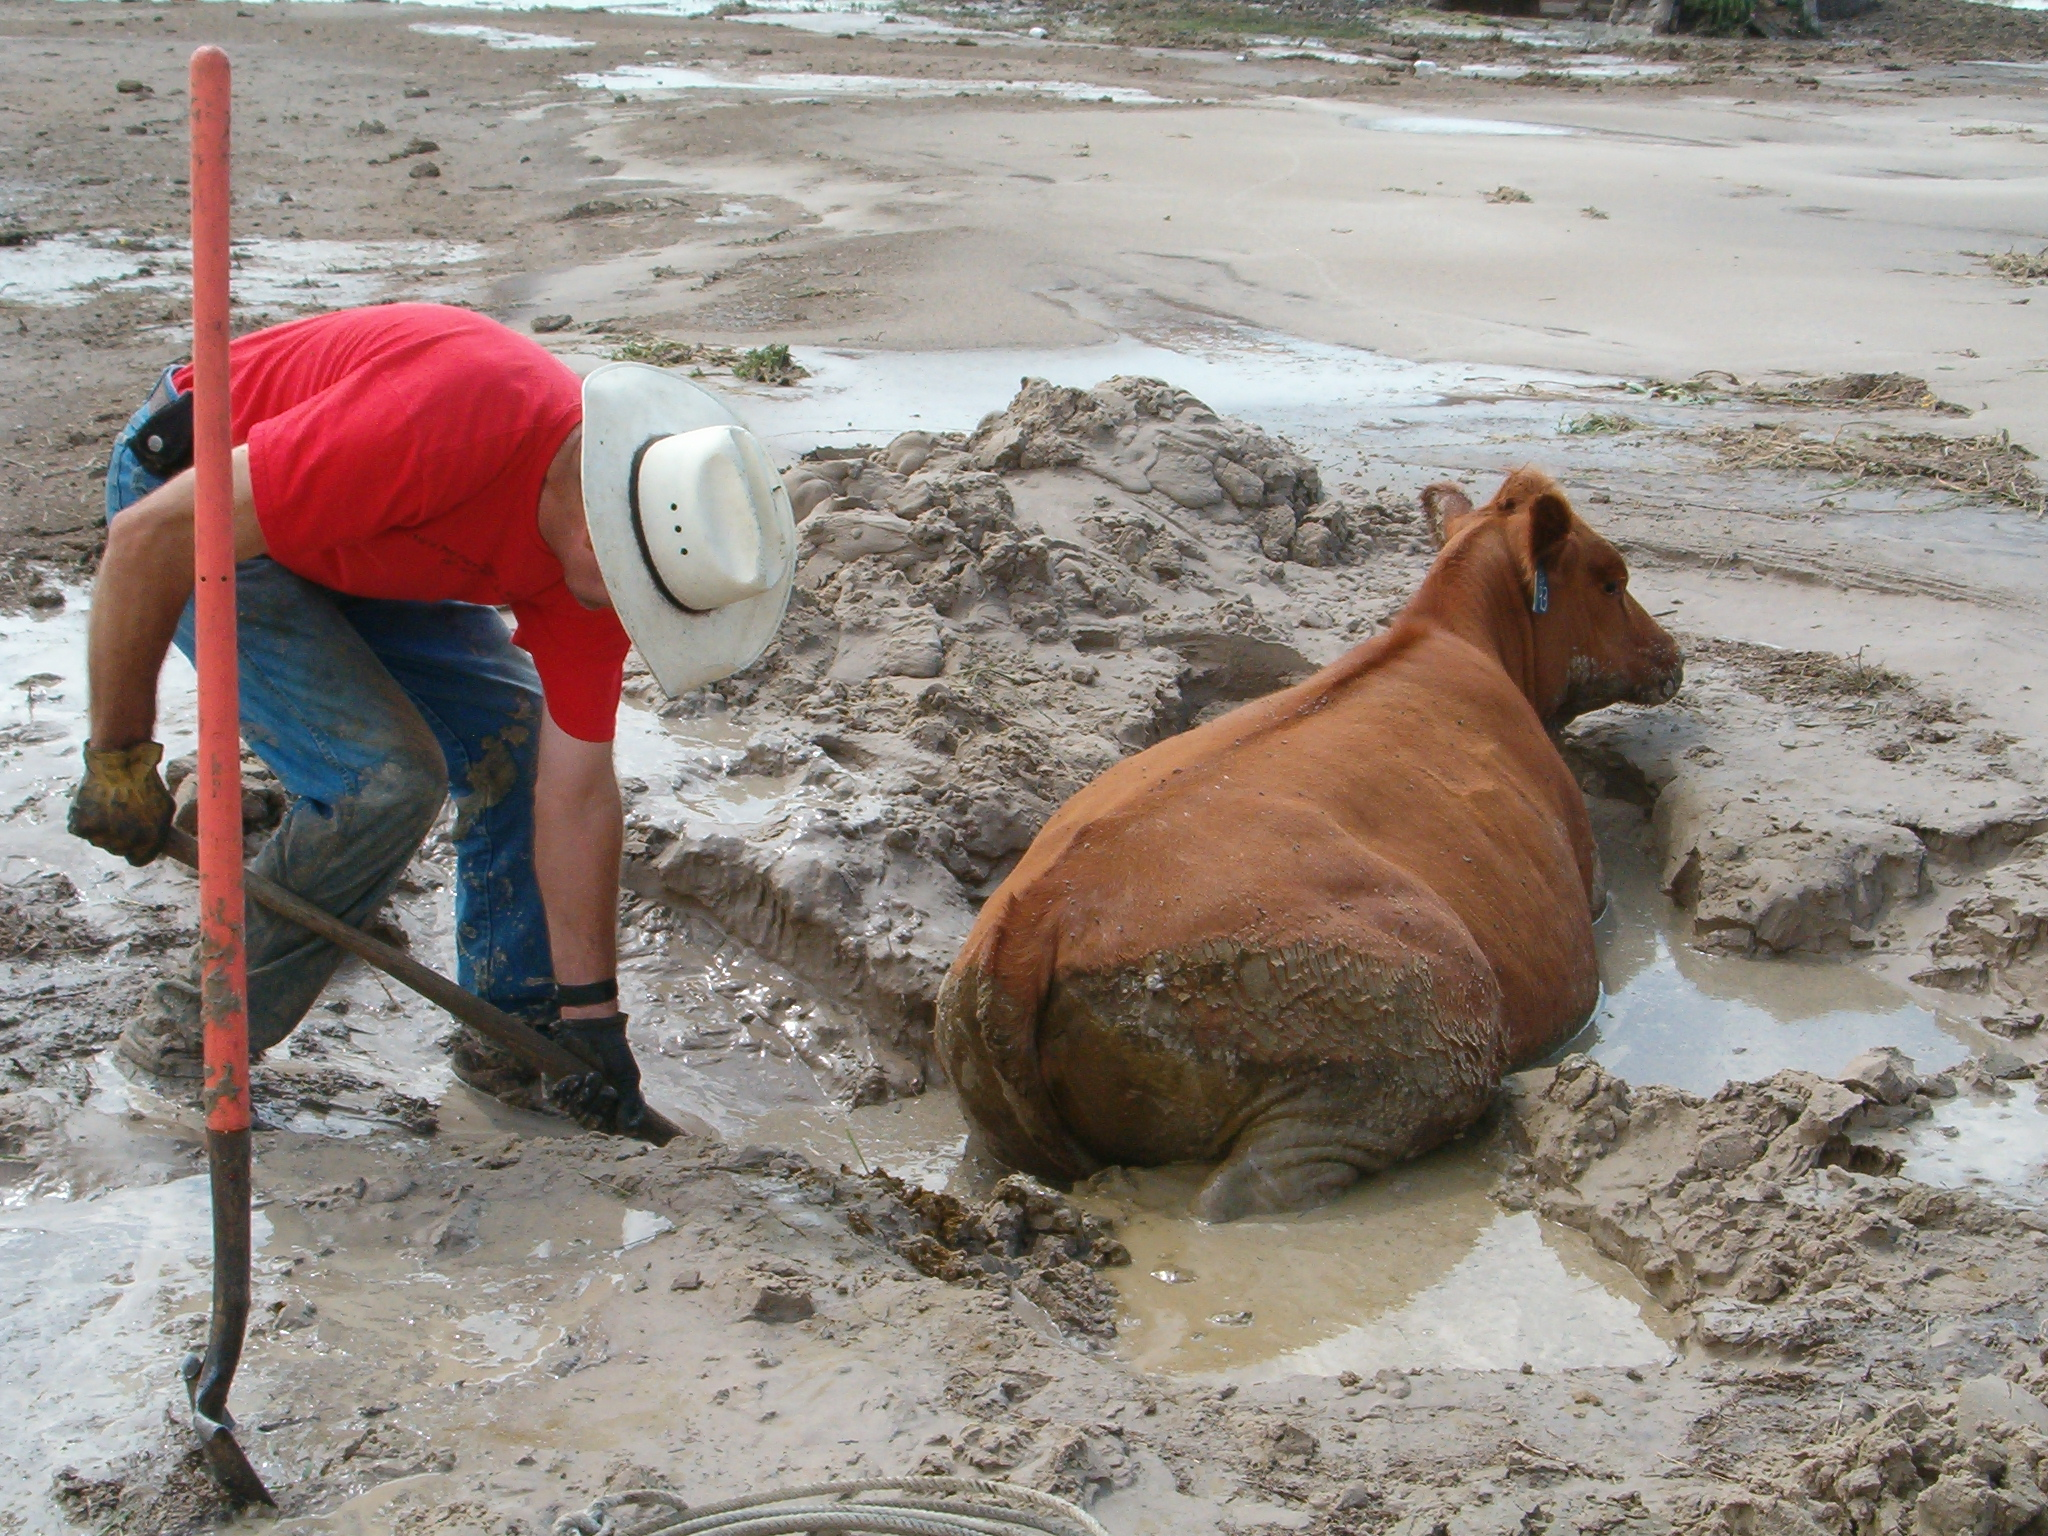 Stuck in the mud pictures